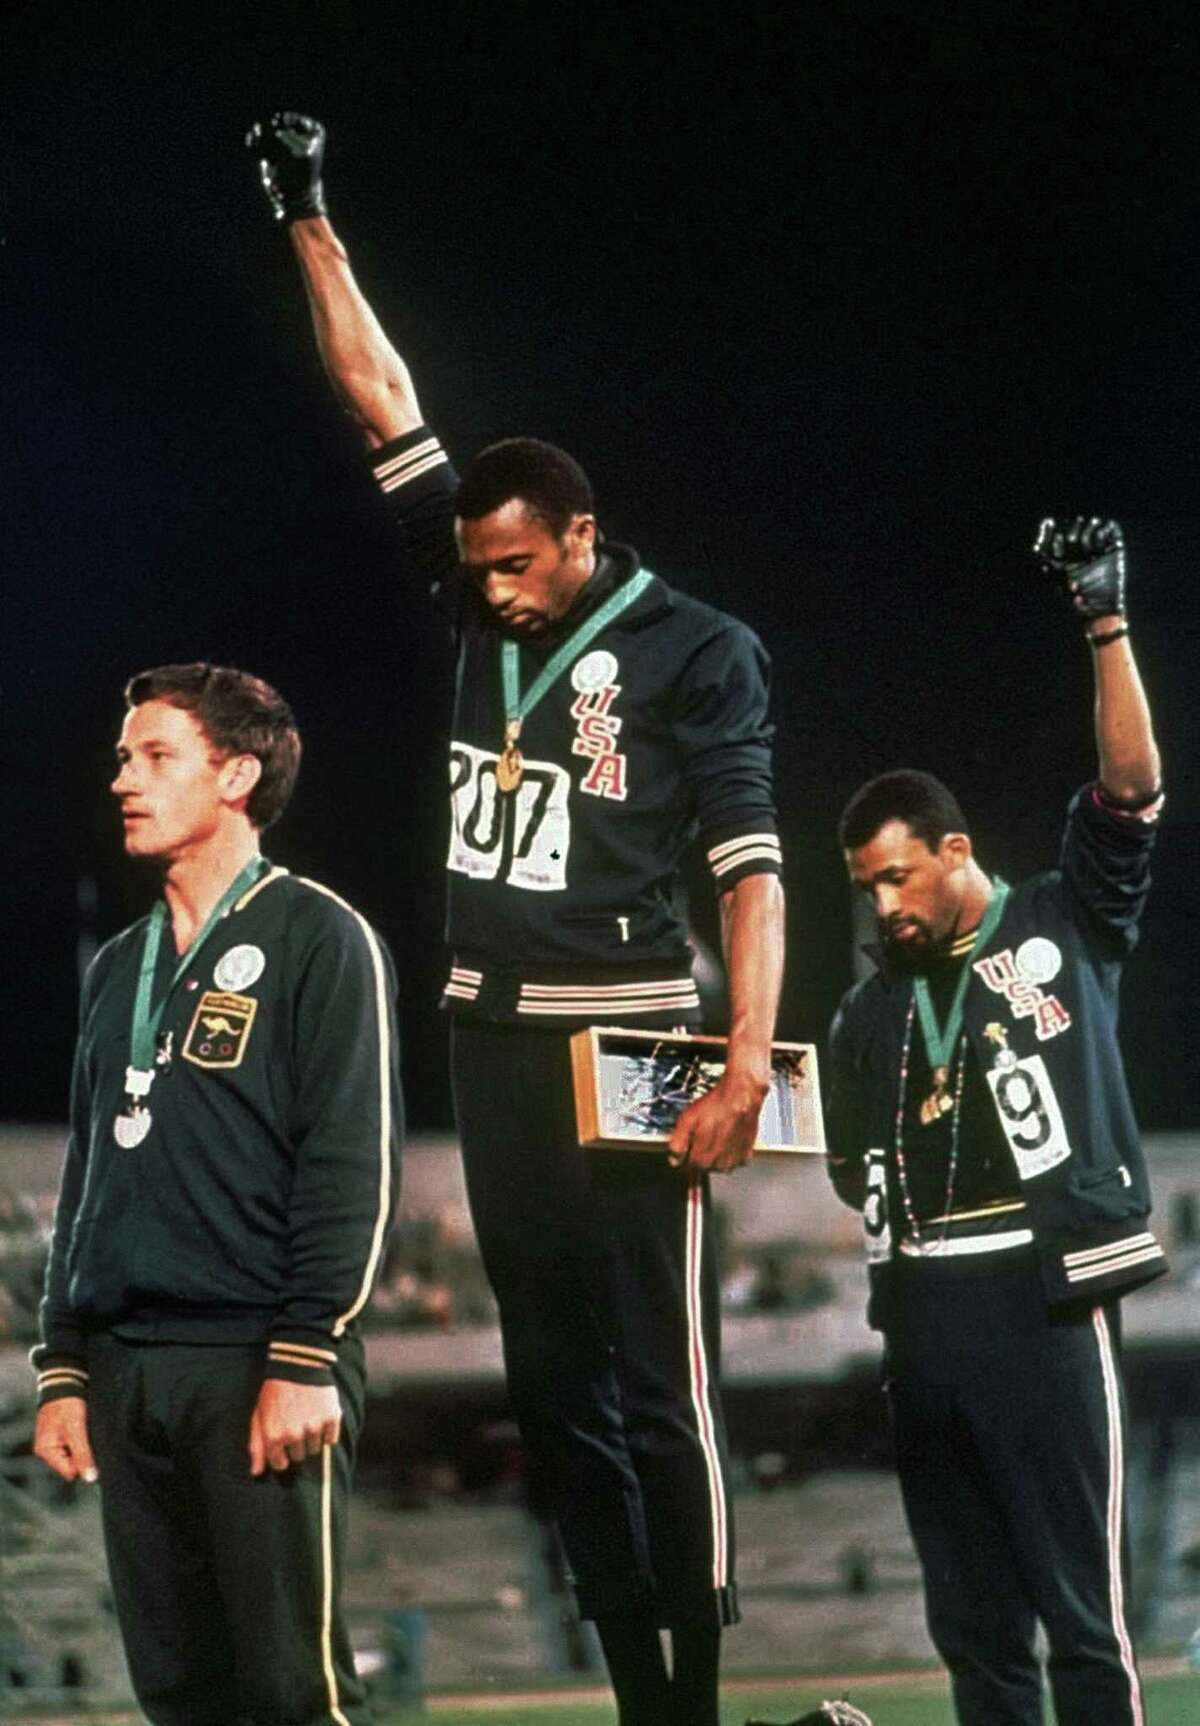 ** FILE ** Extending gloved hands skyward in racial protest, U.S. athletes Tommie Smith, center, and John Carlos stare downward during the playing of the Star Spangled Banner after Smith received the gold and Carlos the bronze for the 200 meter run at the Summer Olympic Games in Mexico City on Oct. 16, 1968. Australian silver medalist Peter Norman is at left. Peter Norman, the Australian who stood alongside the U.S. athletes staging the civil rights protest from the medal podium at the 1968 Olympics, died Tuesday October 3, 2006, of a heart attack. He was 64. (AP Photo/FILE)